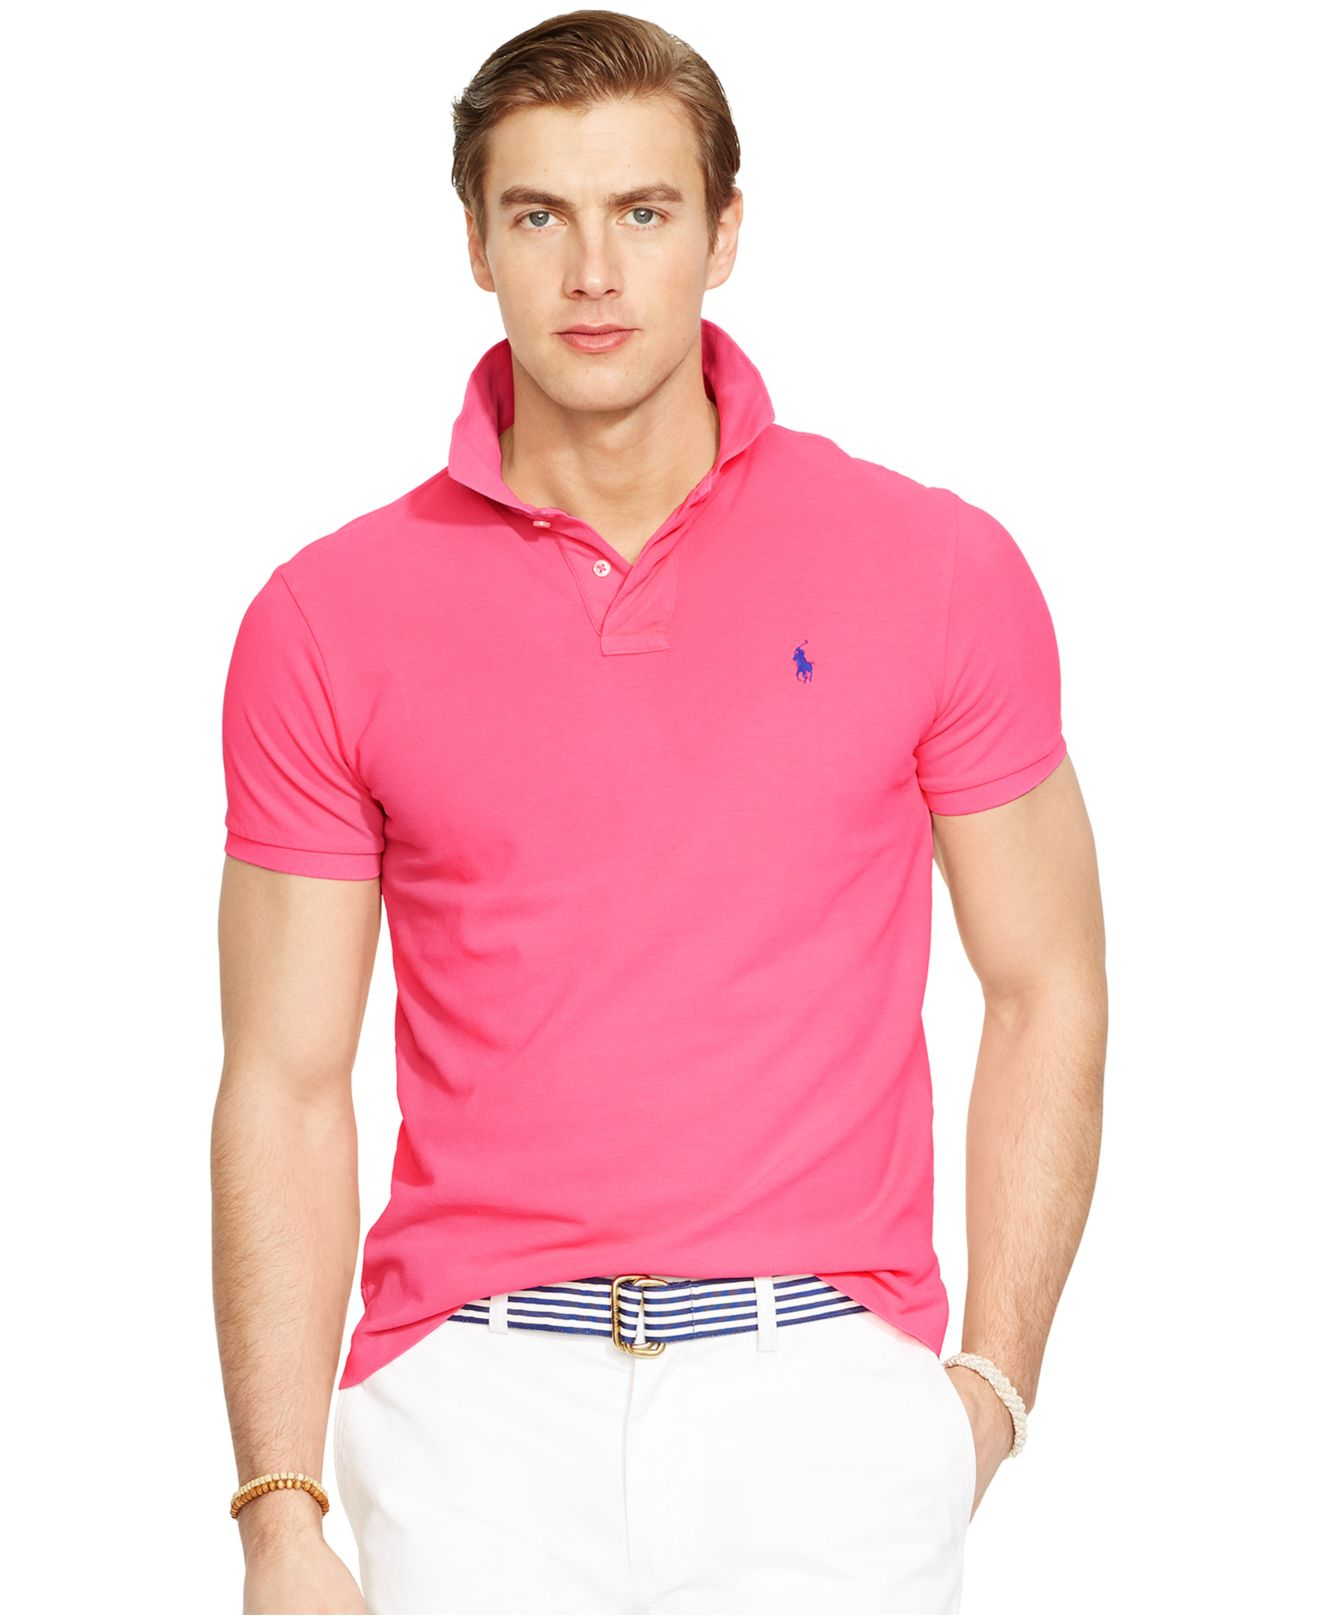 Lyst polo ralph lauren custom fit neon mesh polo shirt for Ralph lauren custom fit mesh polo shirt